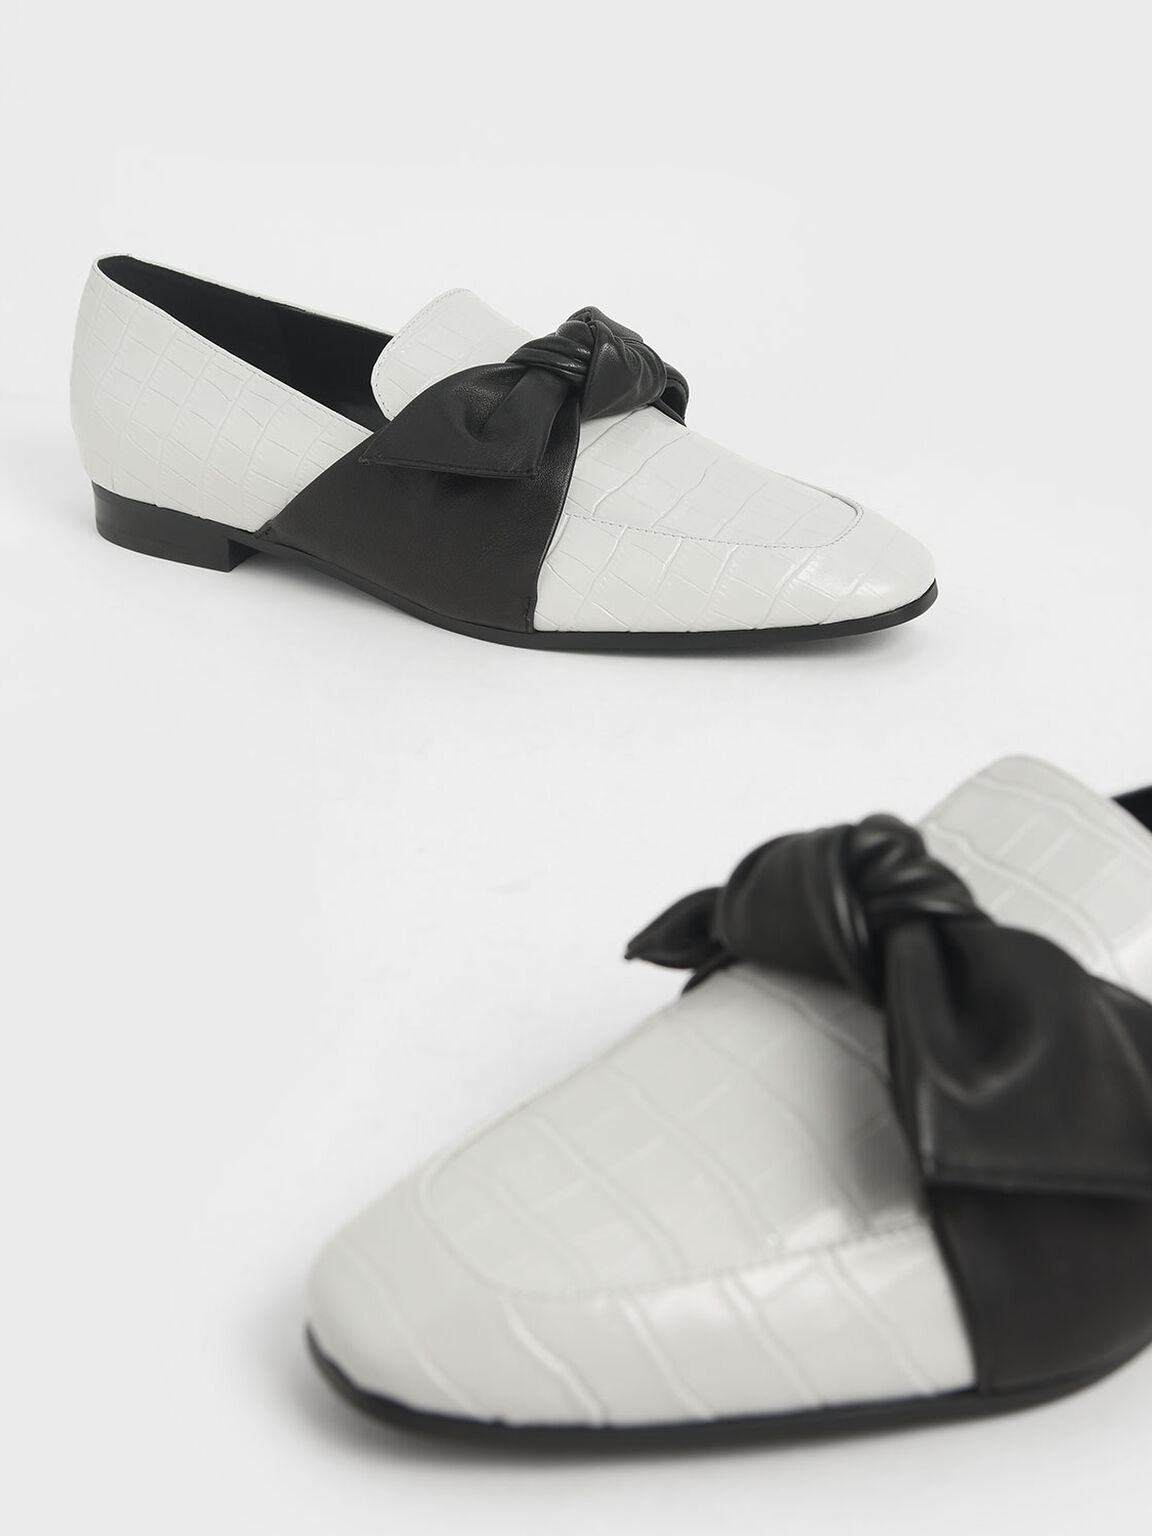 Croc-Effect Leather Bow-Tie Loafers, White, hi-res